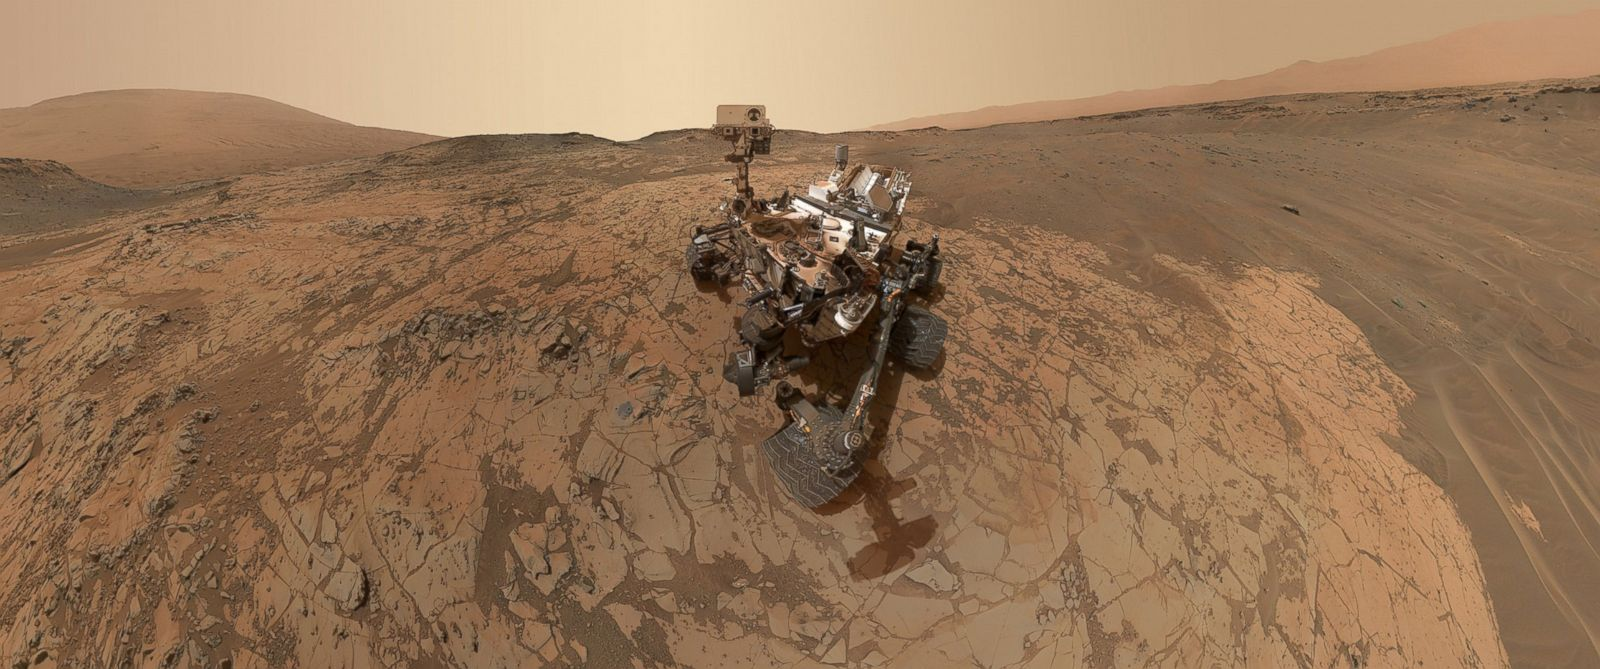 Mars Rover Curiosity Snaps a Selfie on the Red Planet ...